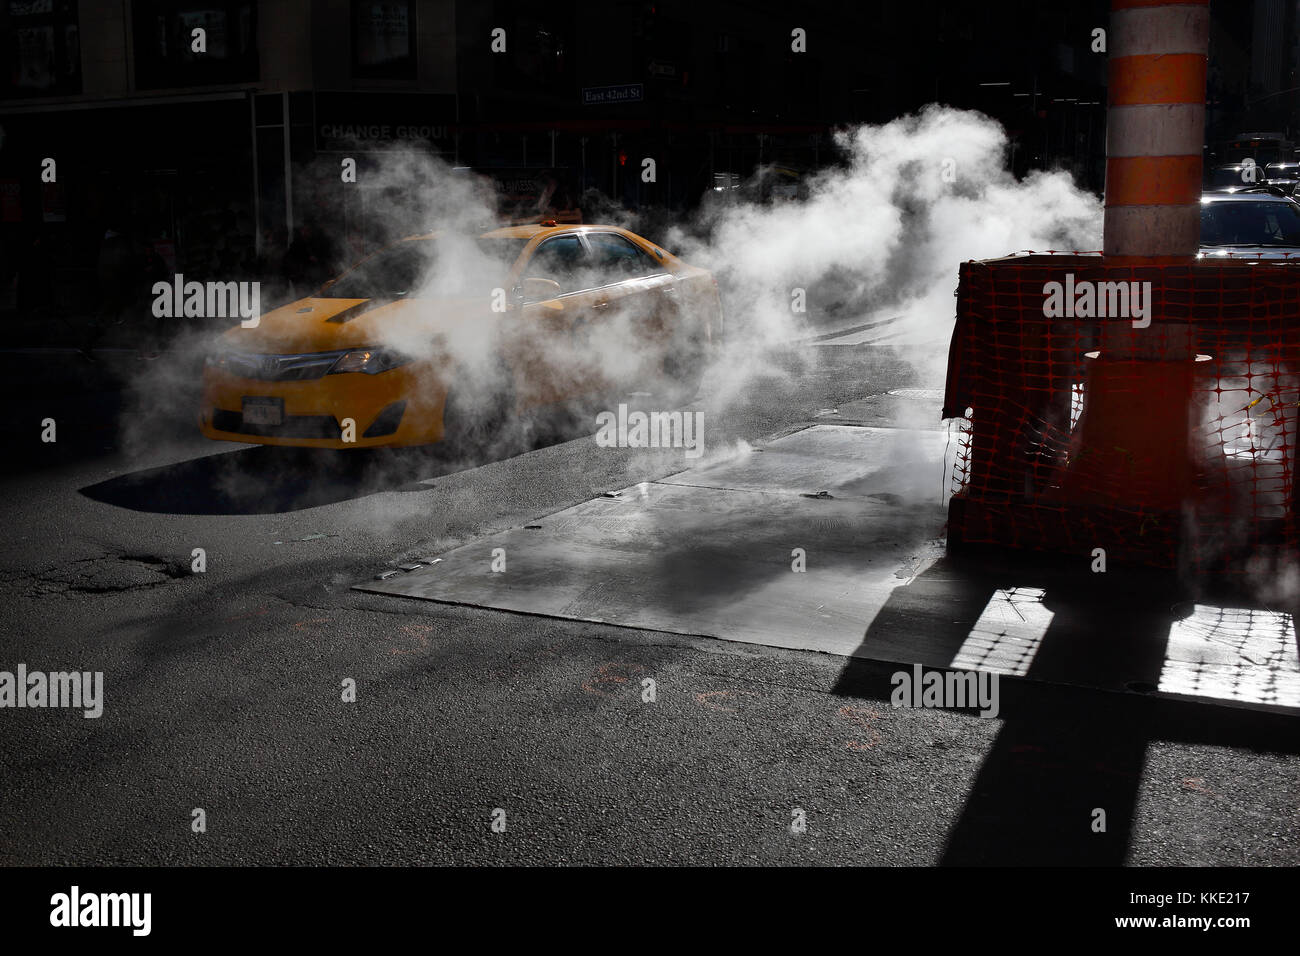 Taxi driving through steam leak in New York City - Stock Image